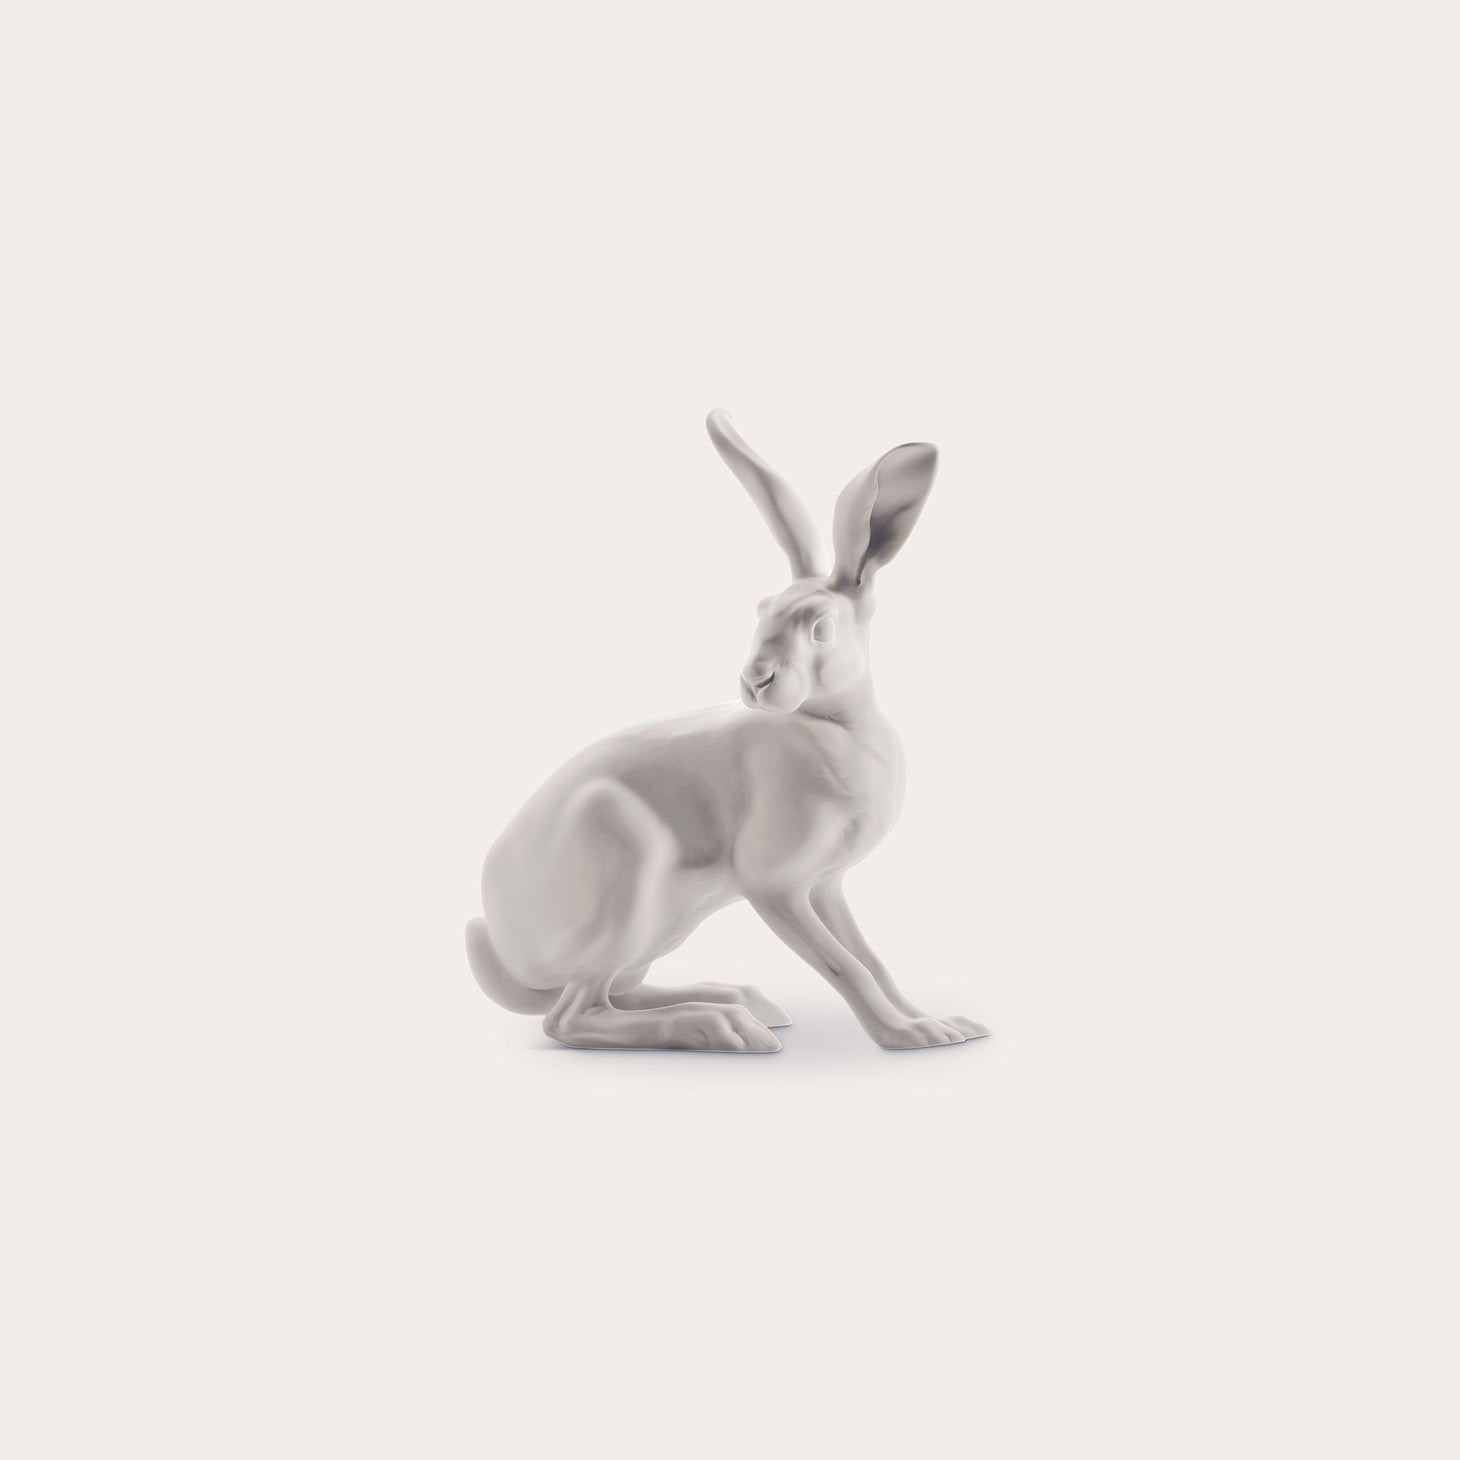 Animals-Hare Accessories Nymphenburg Designer Furniture Sku: 542-100-10003